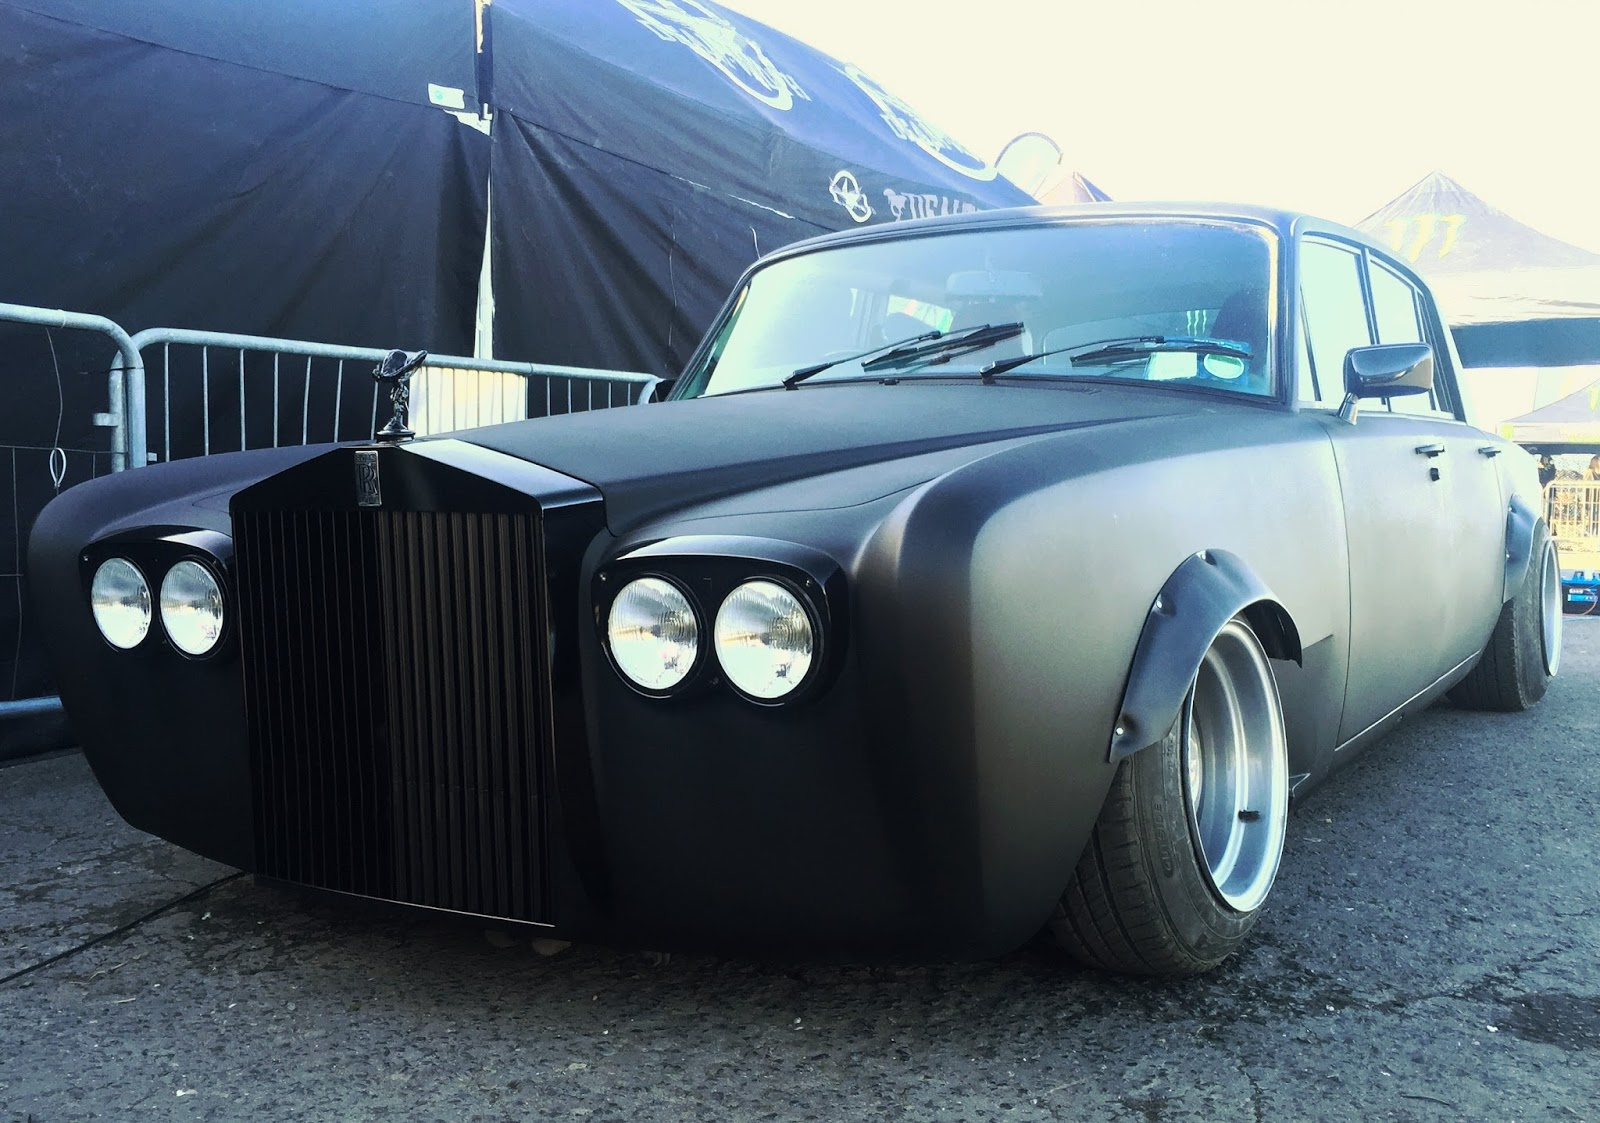 First Lamborghini Ever Made >> Yes, This Is A Rolls-Royce Silver Shadow Drift Car | carscoops.com